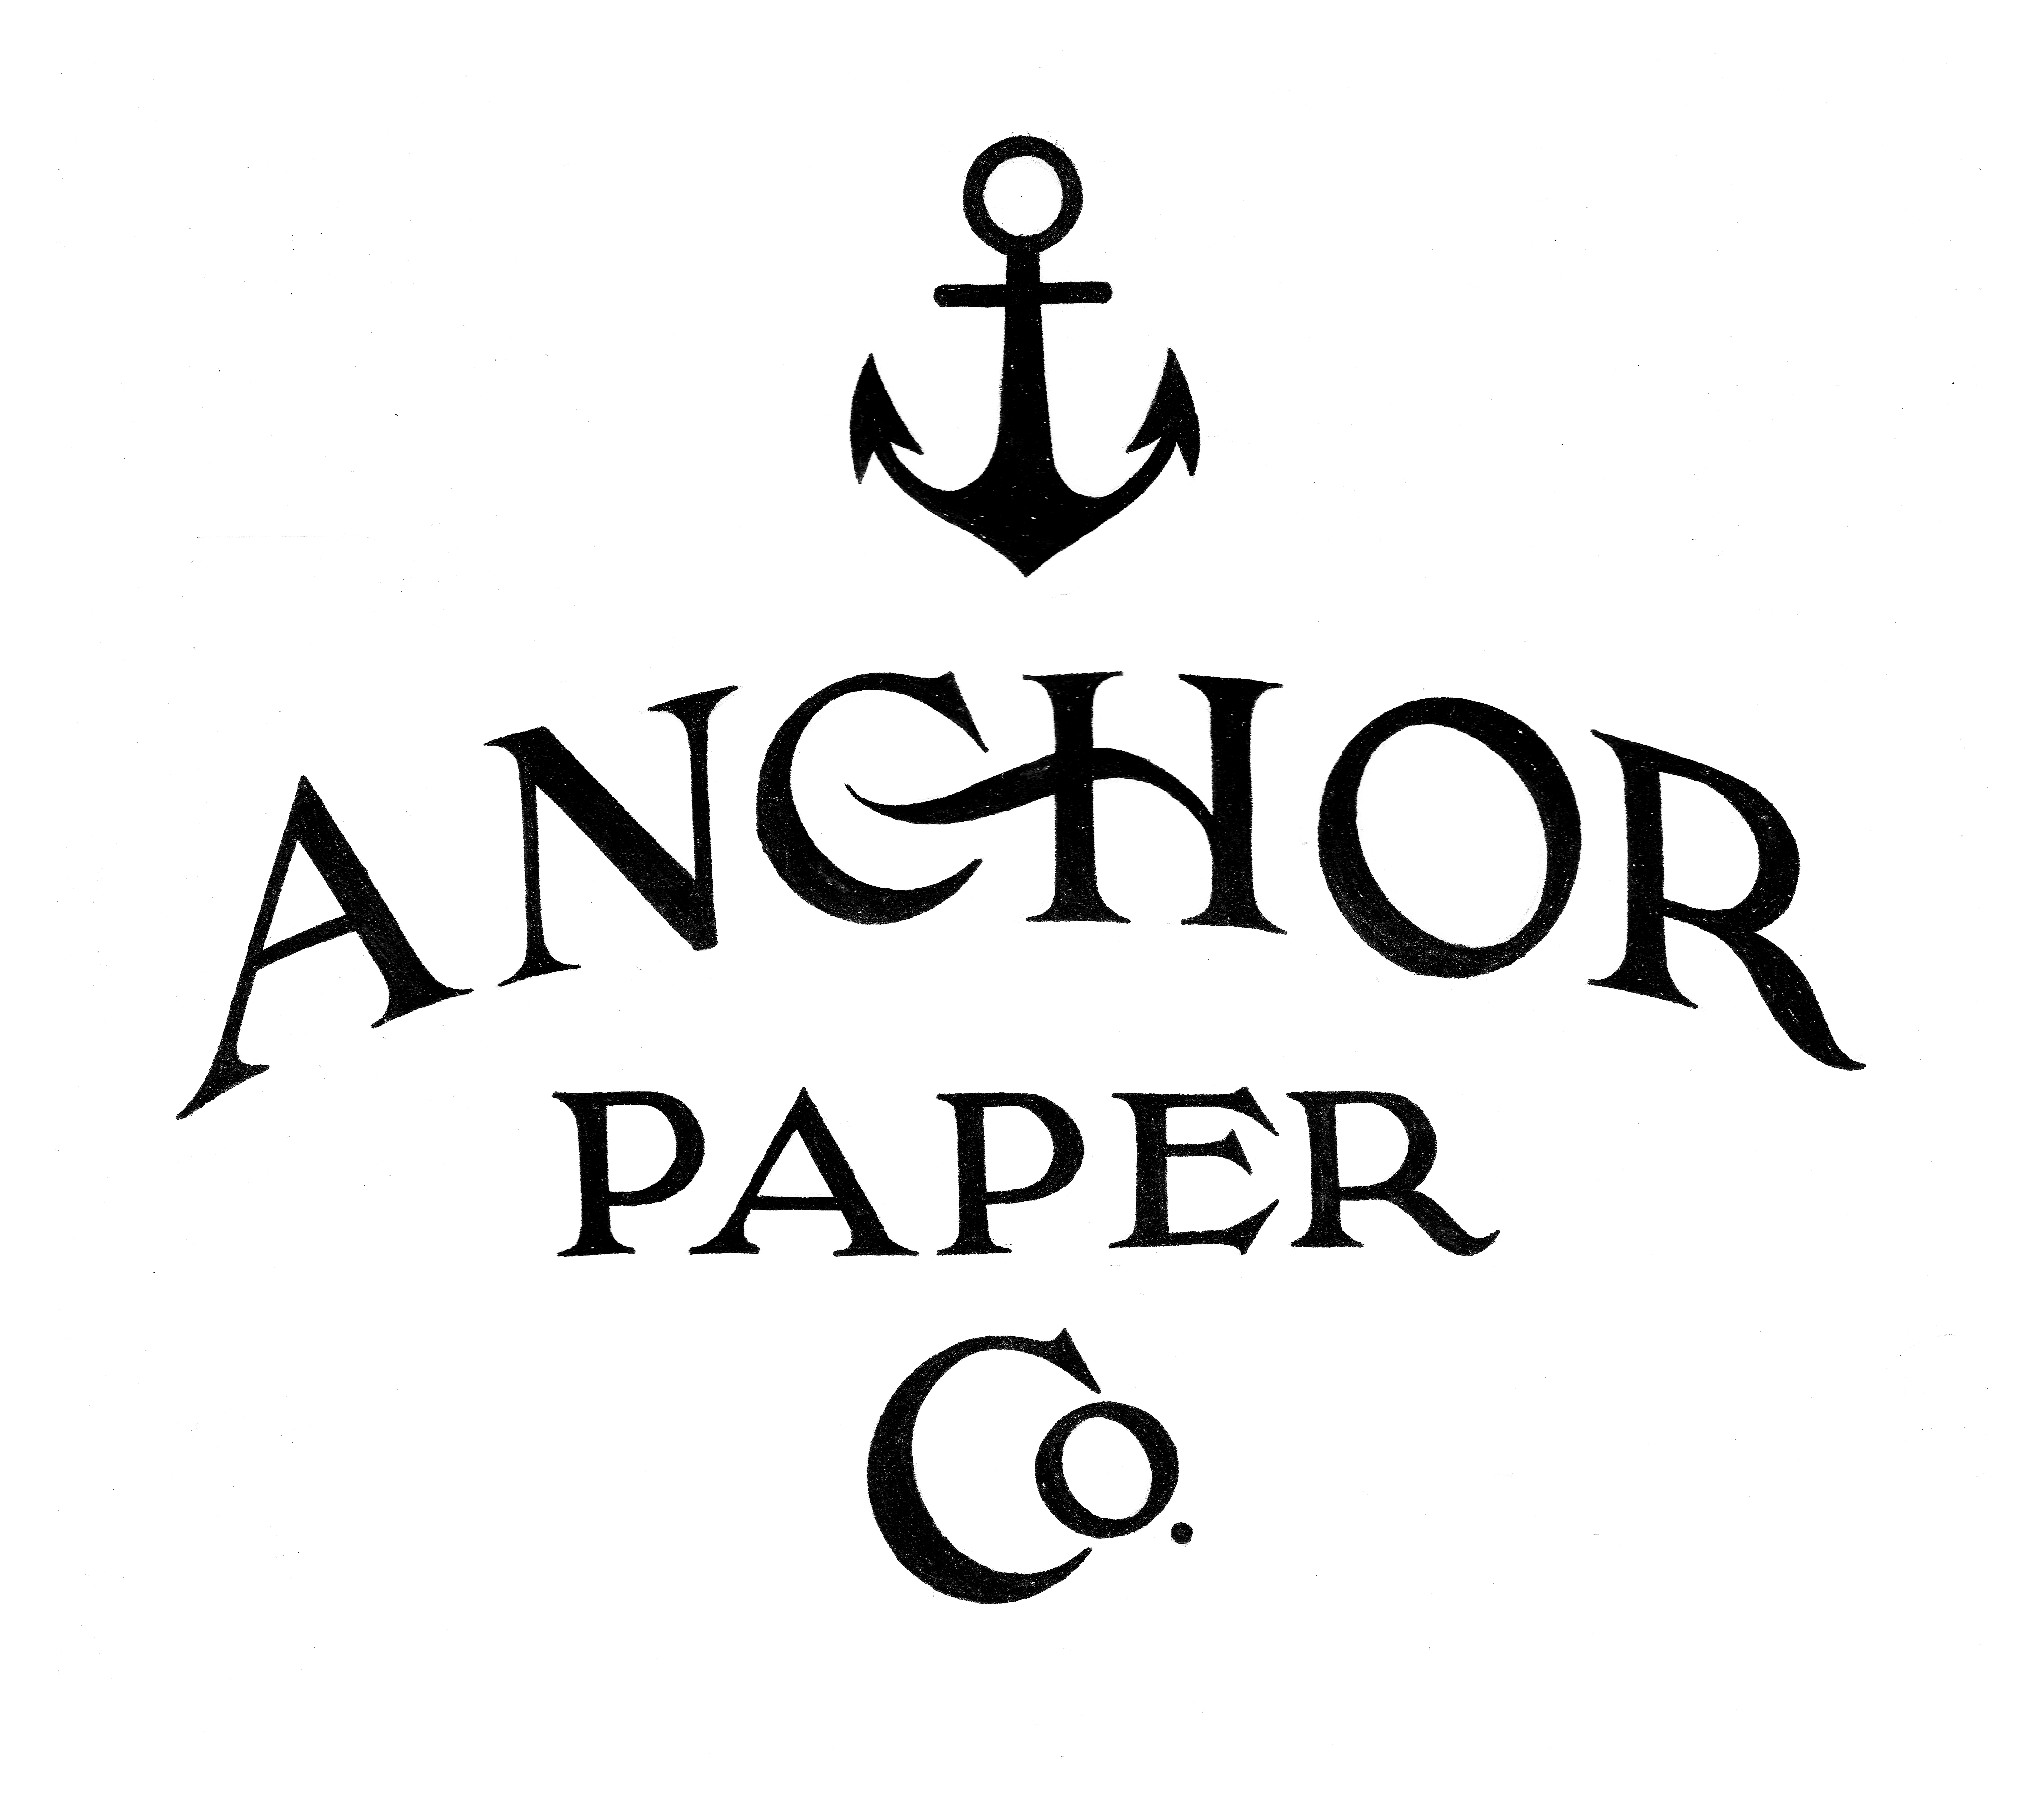 Anchor Paper Co.